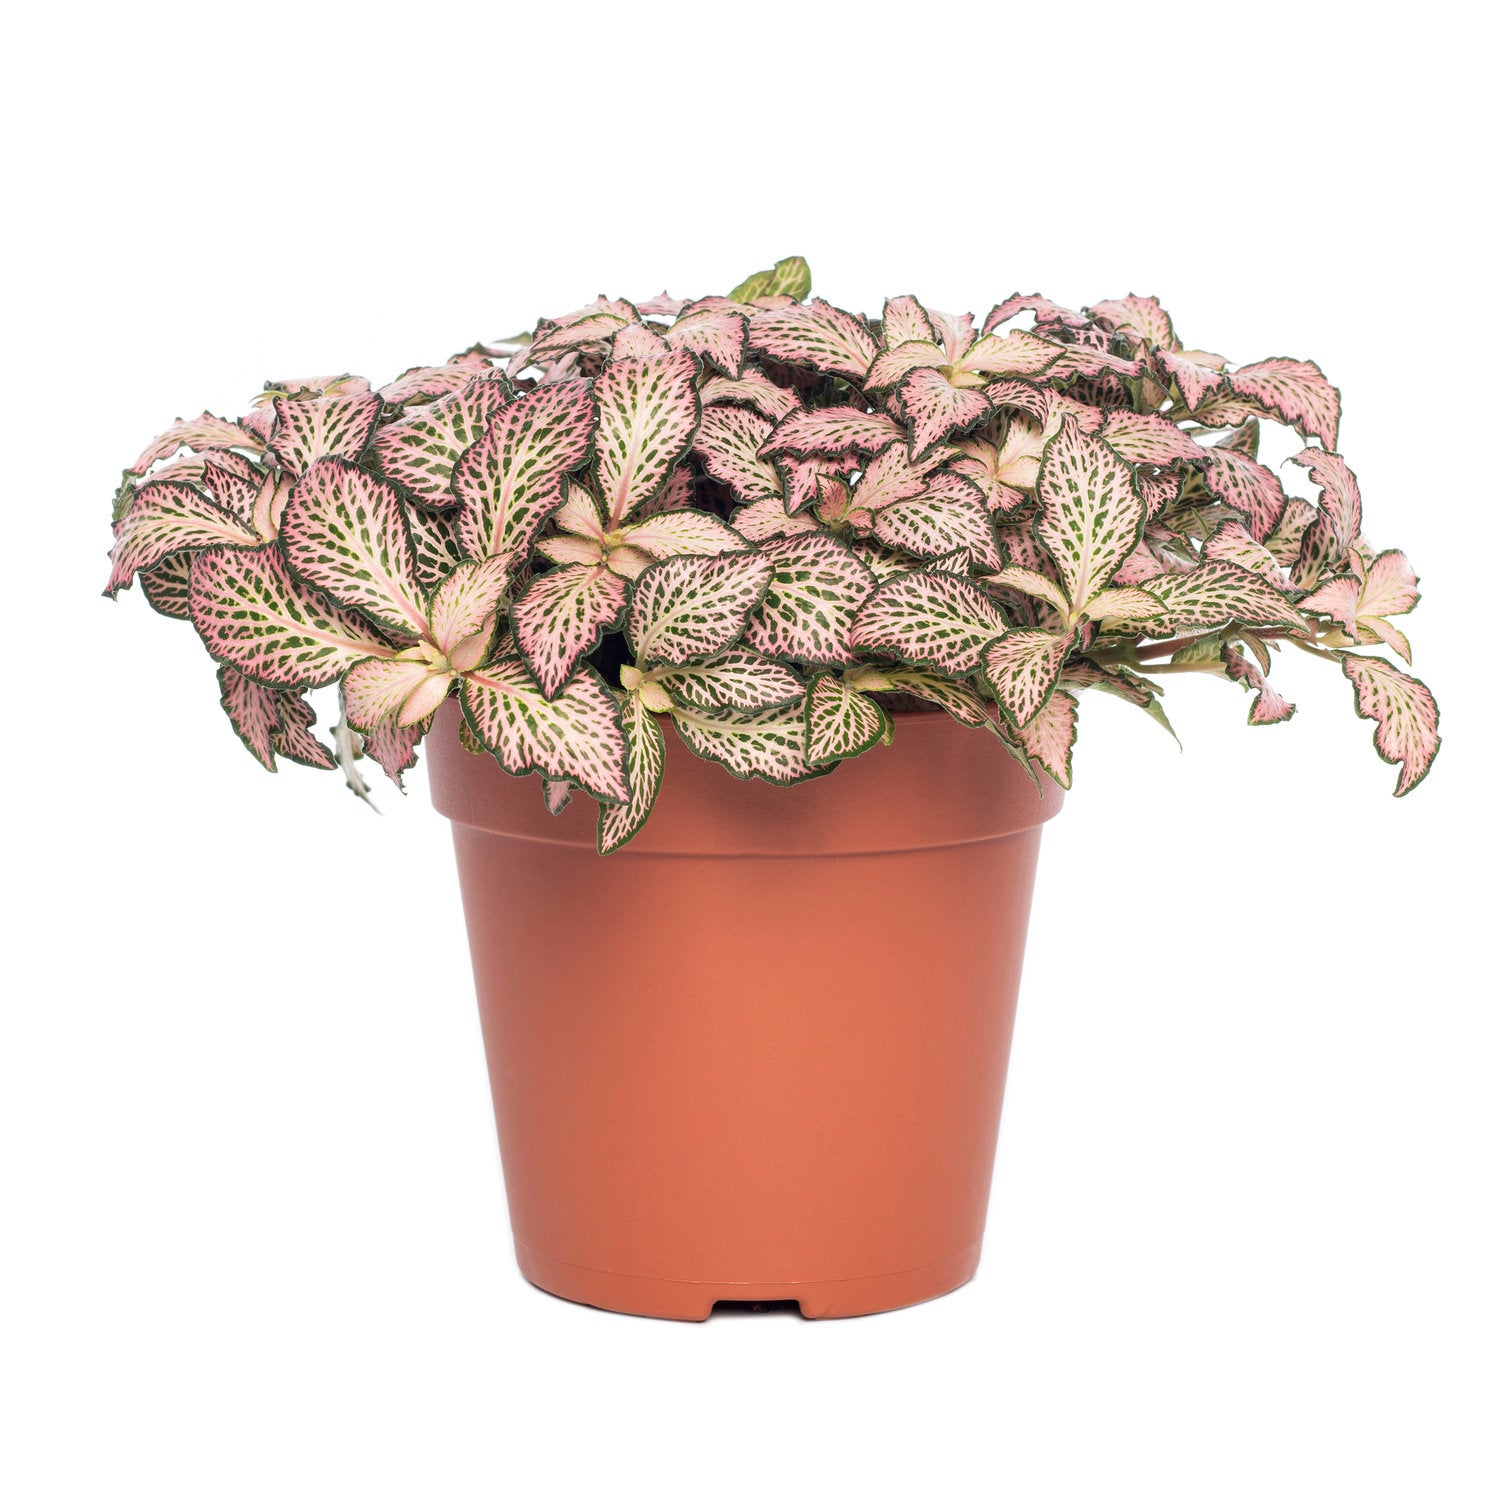 Mozaïekplant (Fittonia mosaic 'Pink Forest Flame') D 12 H 15 cm